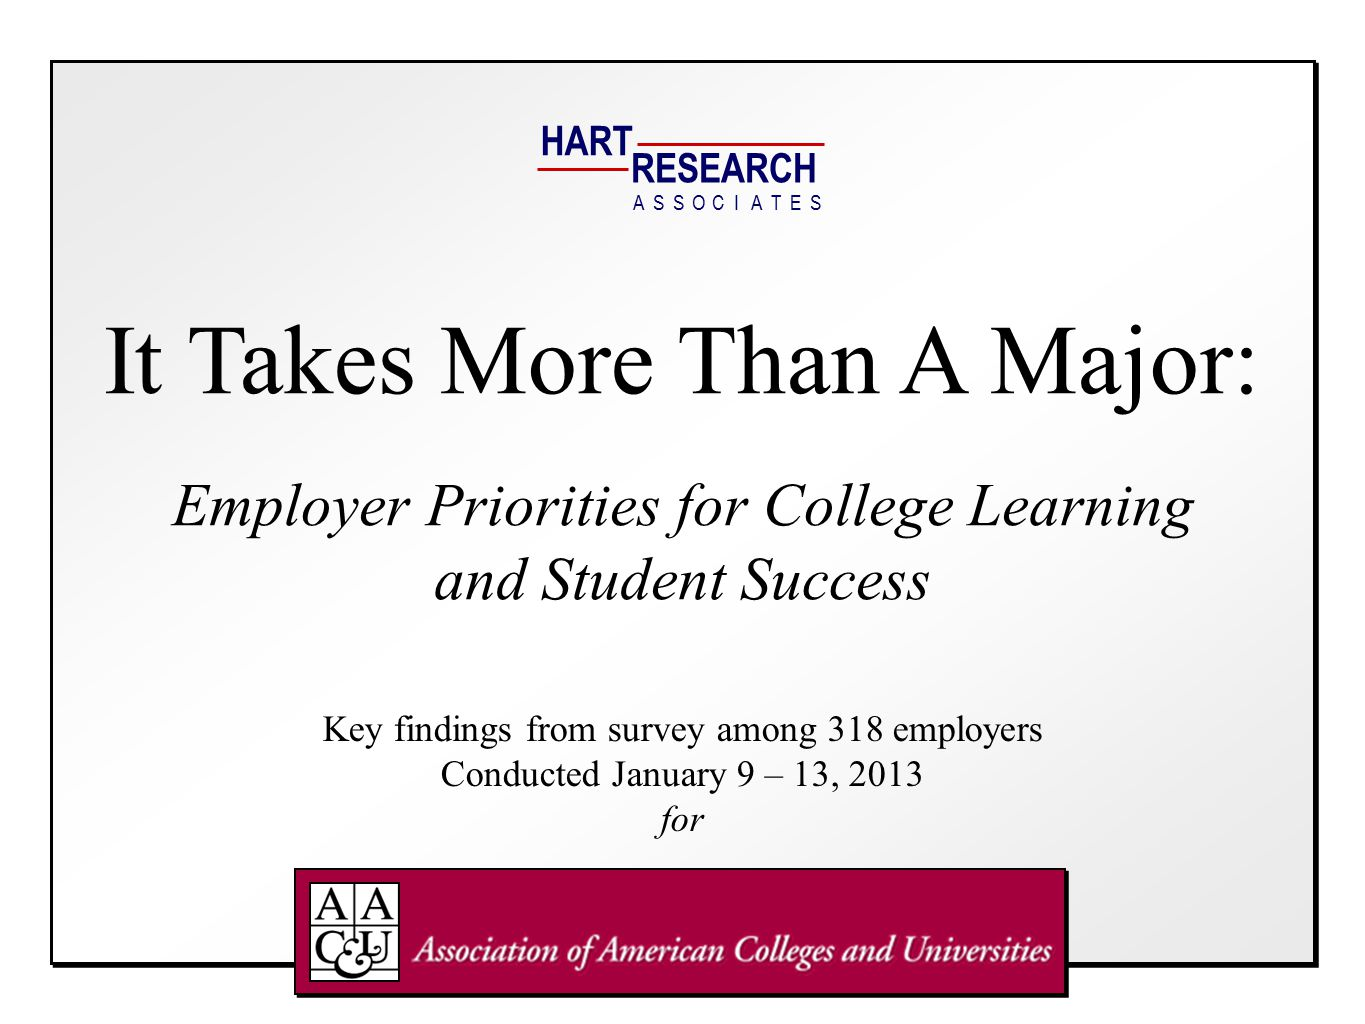 HART RESEARCH ASSOTESCIA It Takes More Than A Major: Employer Priorities for College Learning and Student Success Key findings from survey among 318 employers Conducted January 9 – 13, 2013 for